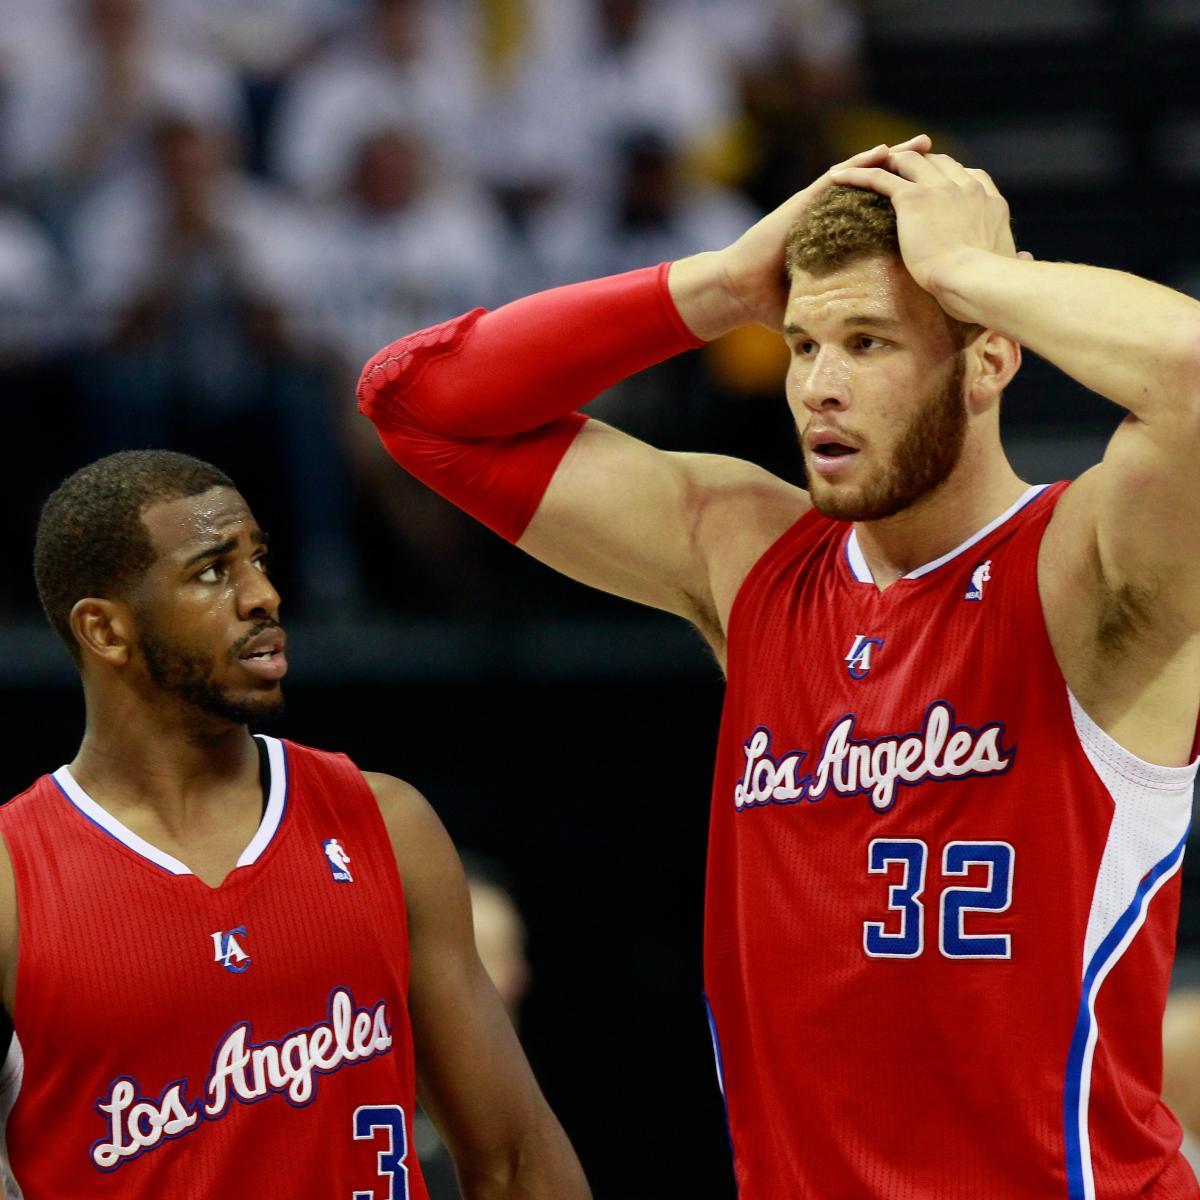 Nuggets Clippers Highlights: Denver Nuggets Vs. Los Angeles Clippers: Preview, Analysis